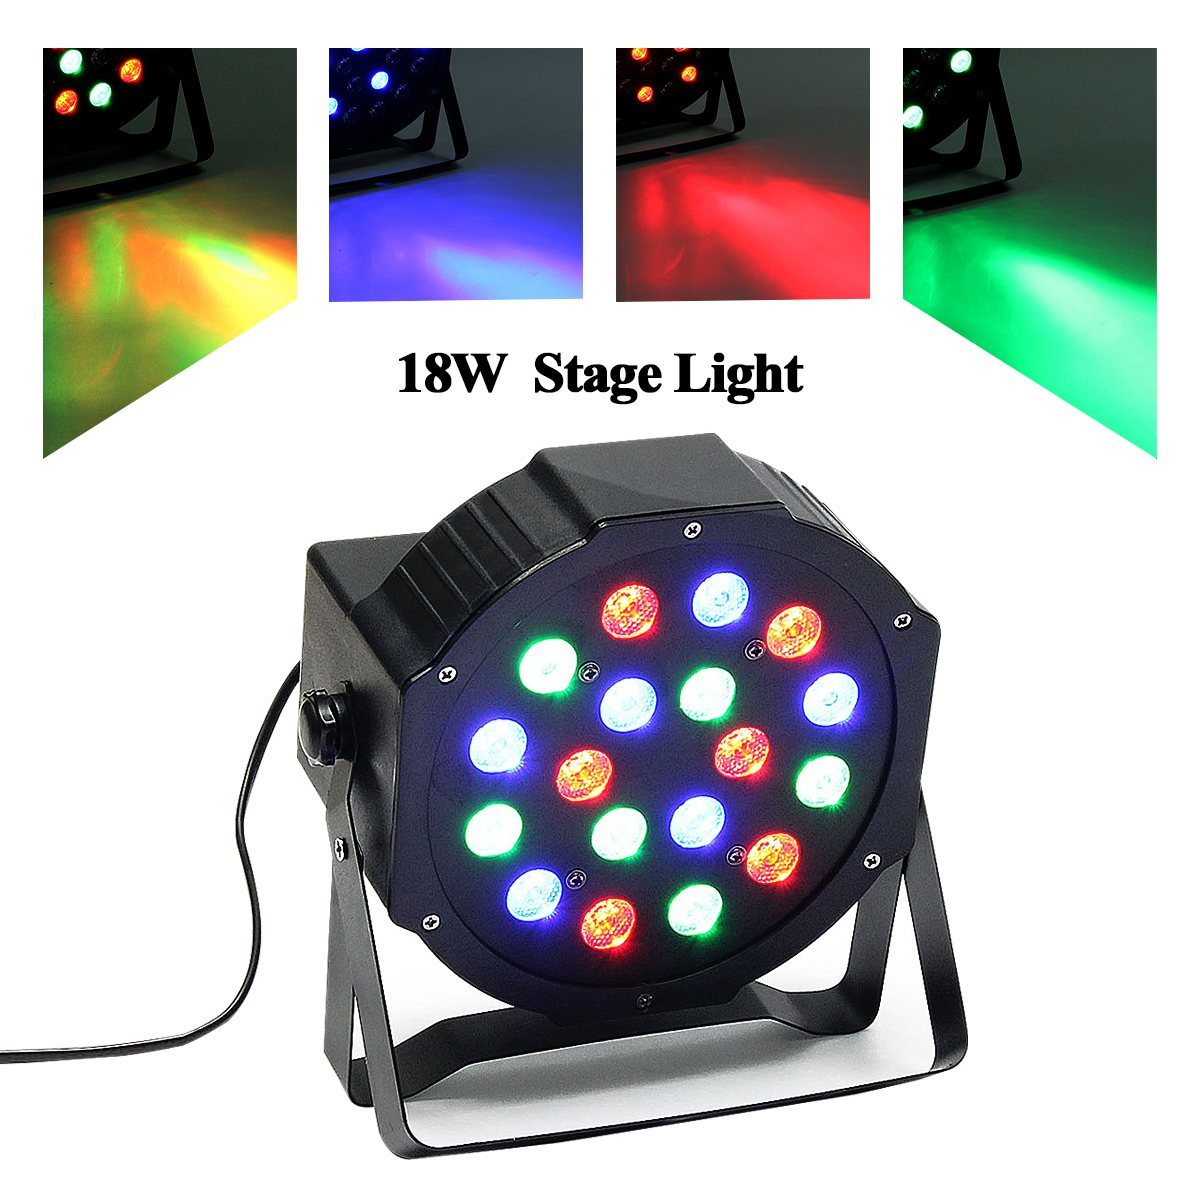 Professional 18 LED RGB Night Light DMX512 Stage Lighting Effect Strobe Projector DJ Disco Party Club Bar Show Decor Lamp mini rgb led crystal magic ball stage effect lighting lamp bulb party disco club dj light show lumiere